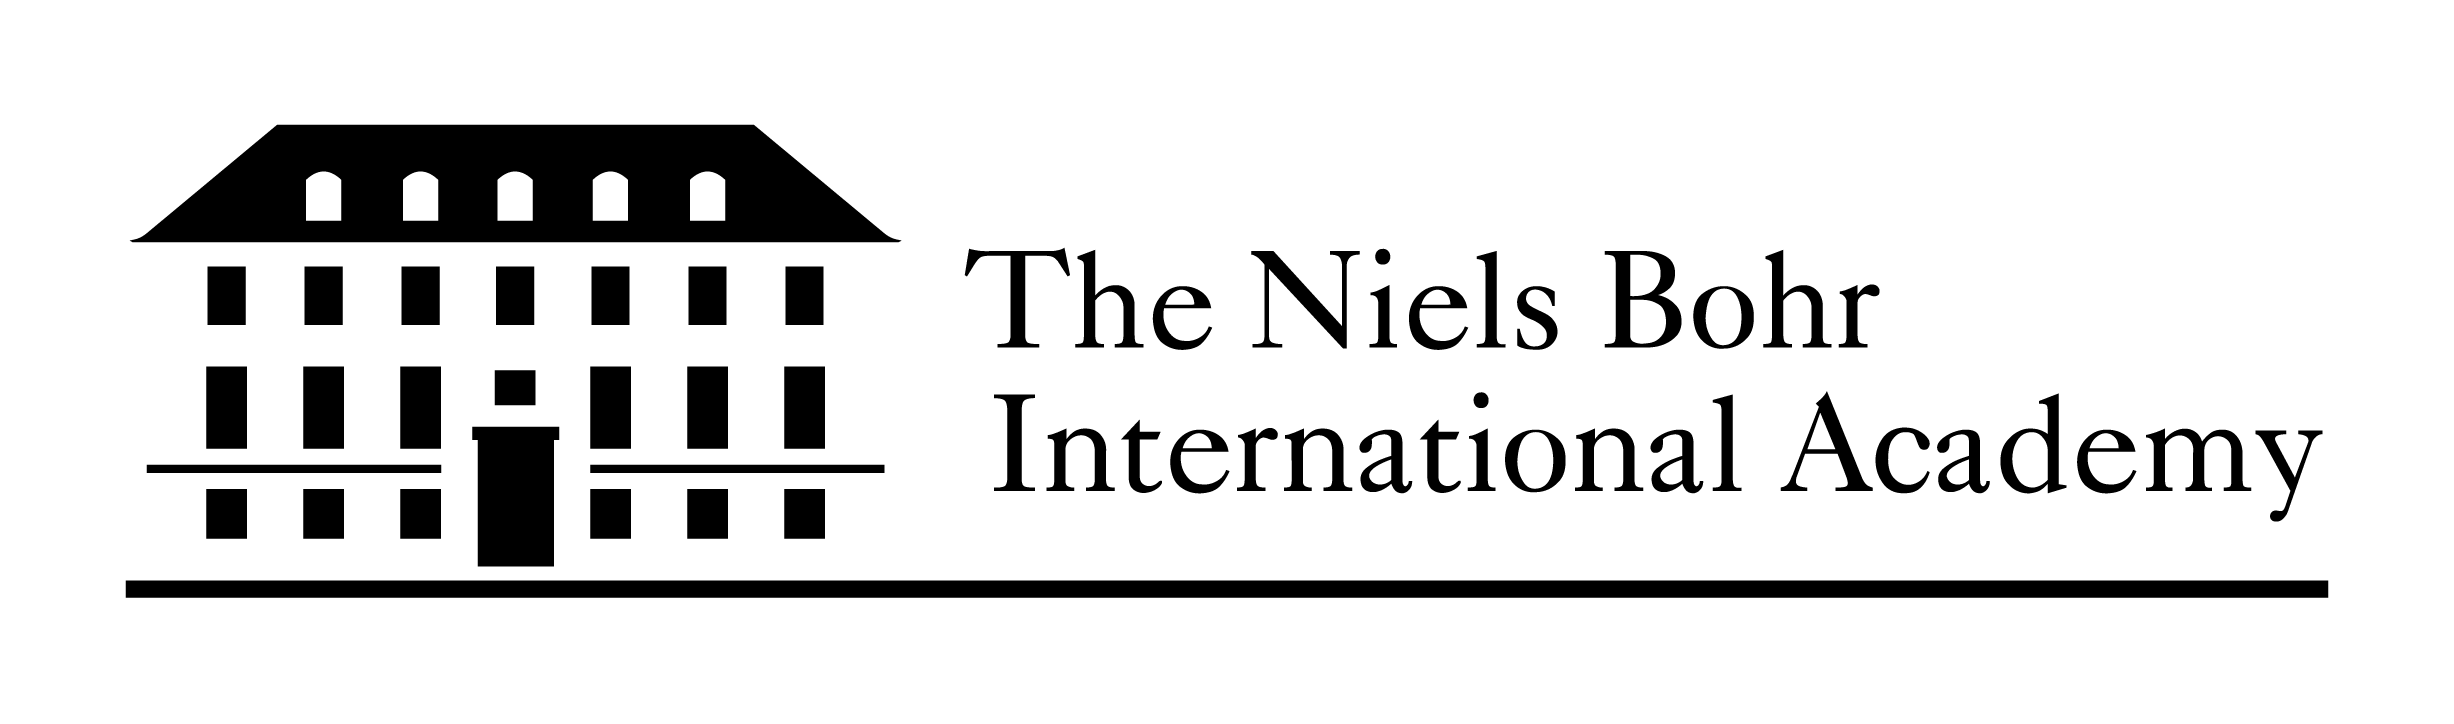 Niels Bohr International Academy